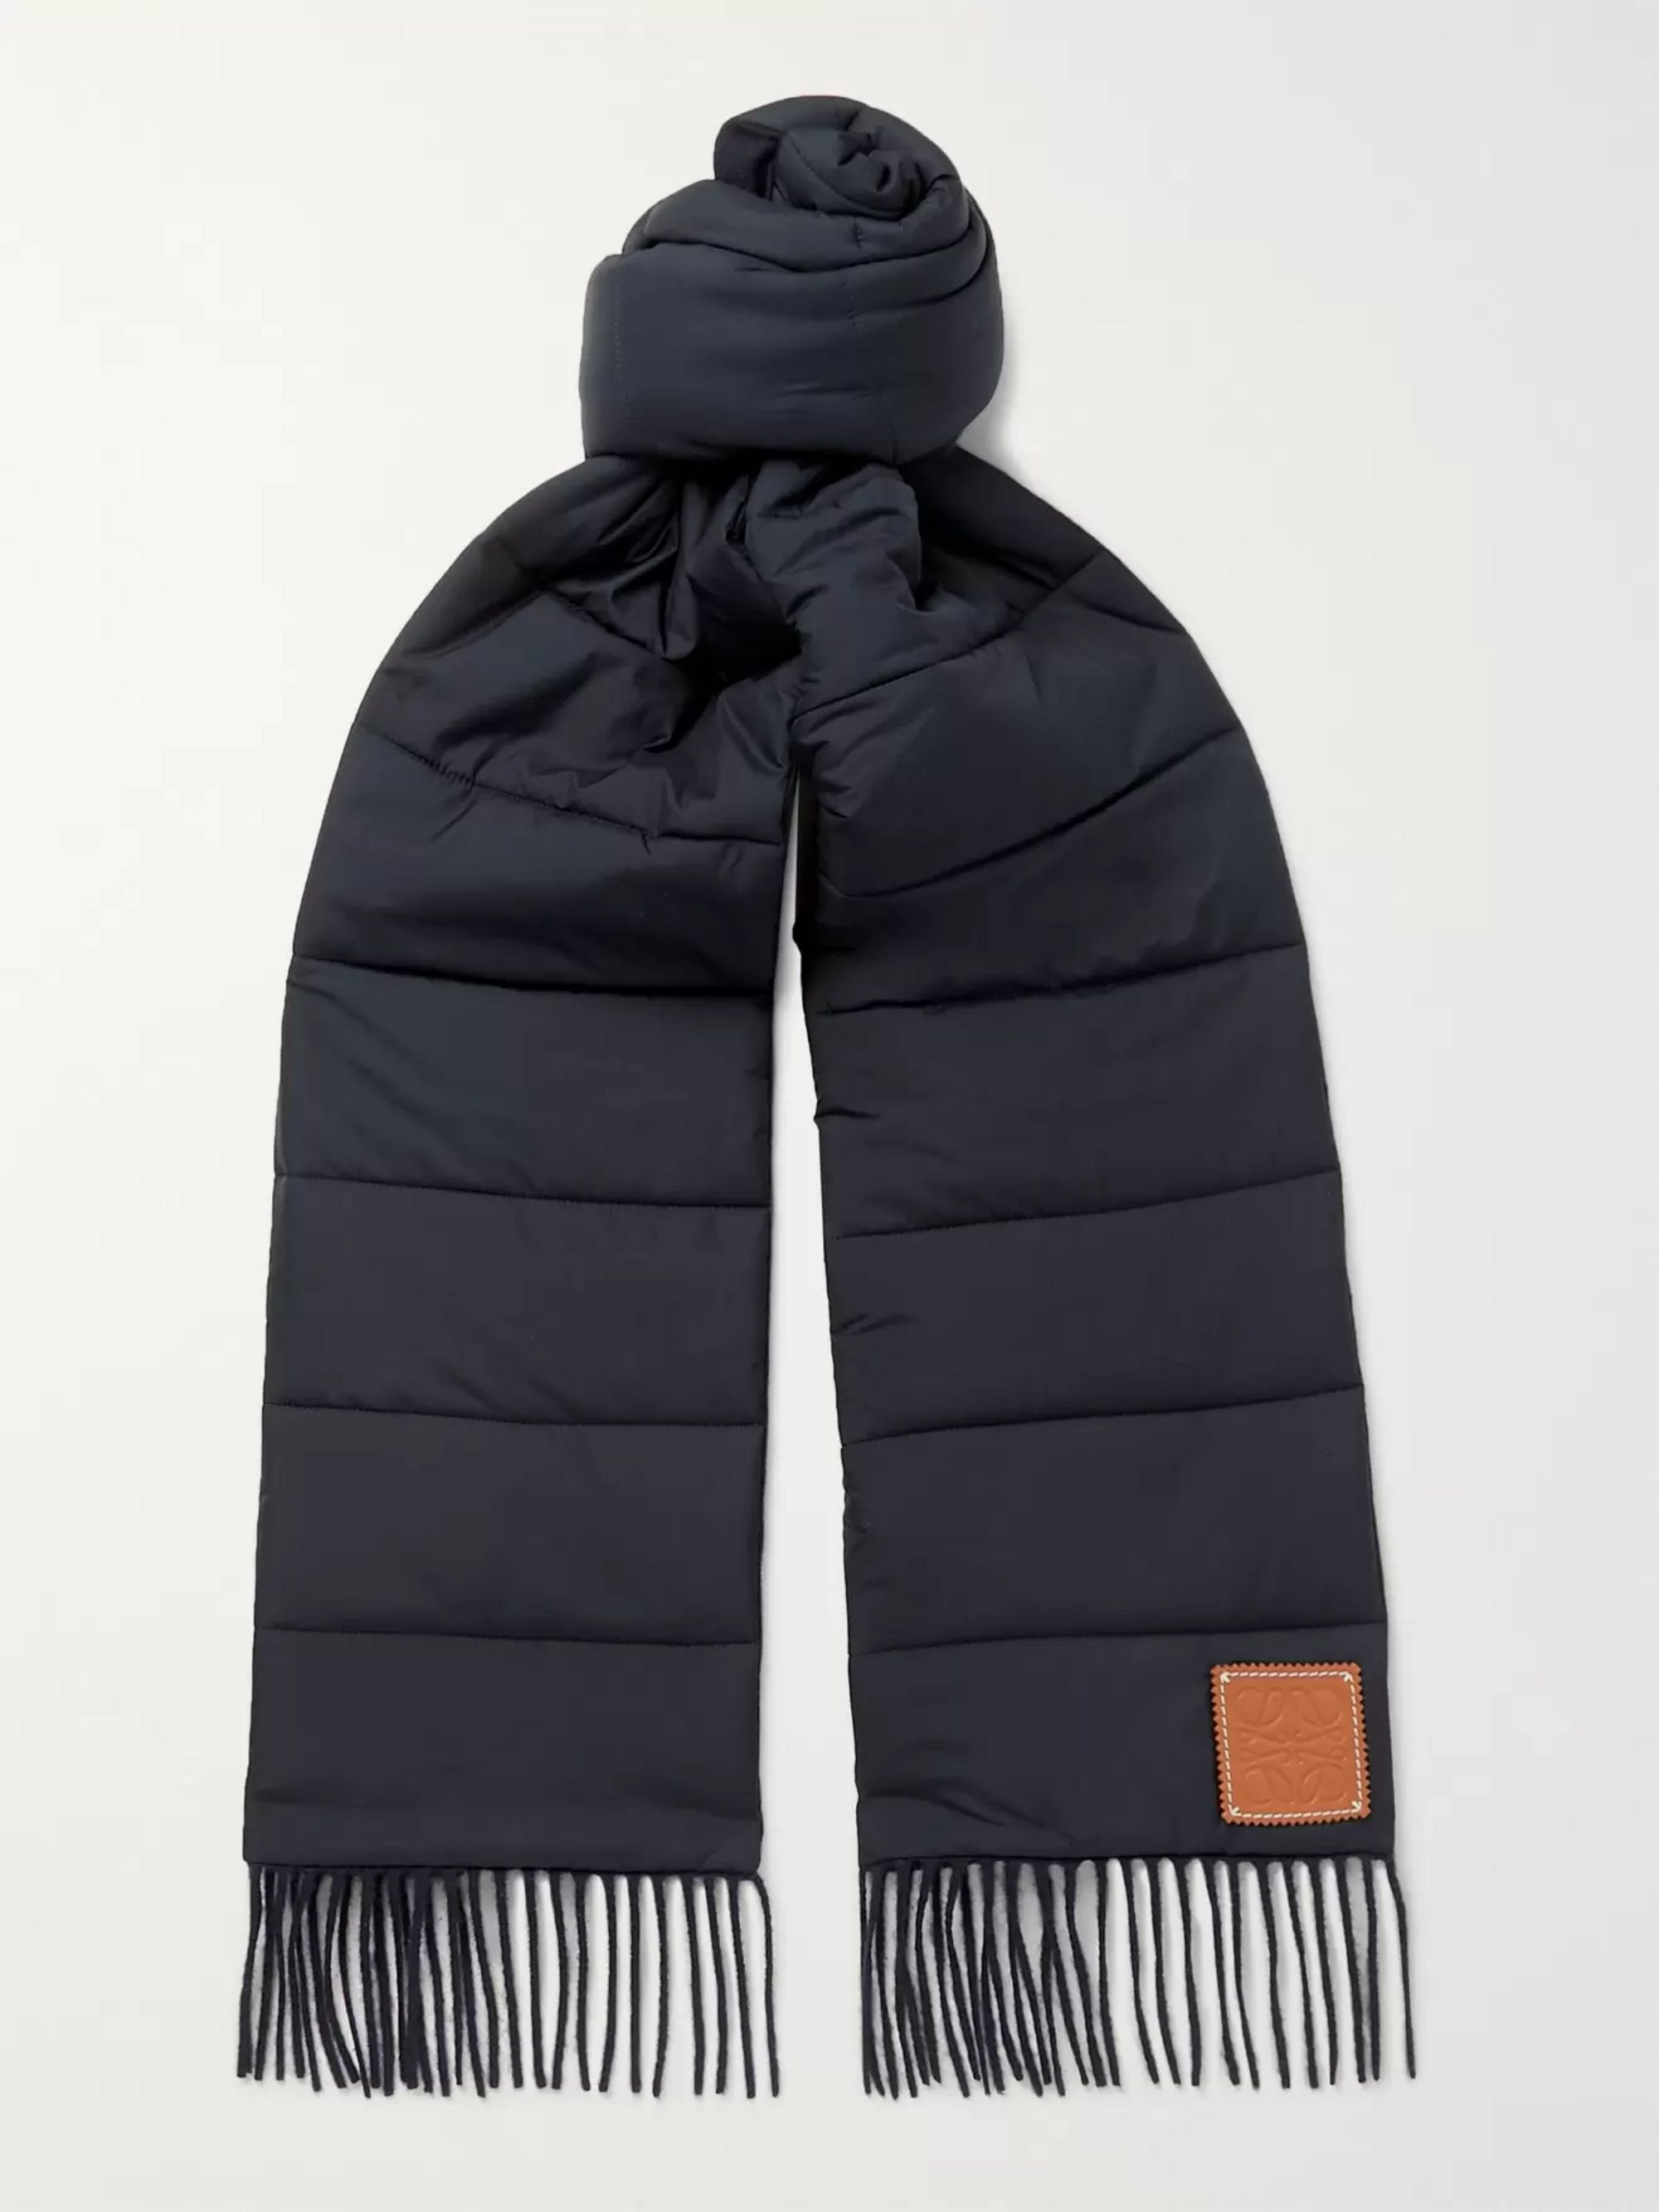 Loewe Fringed Logo-Appliquéd Quilted Cashmere and Shell Scarf